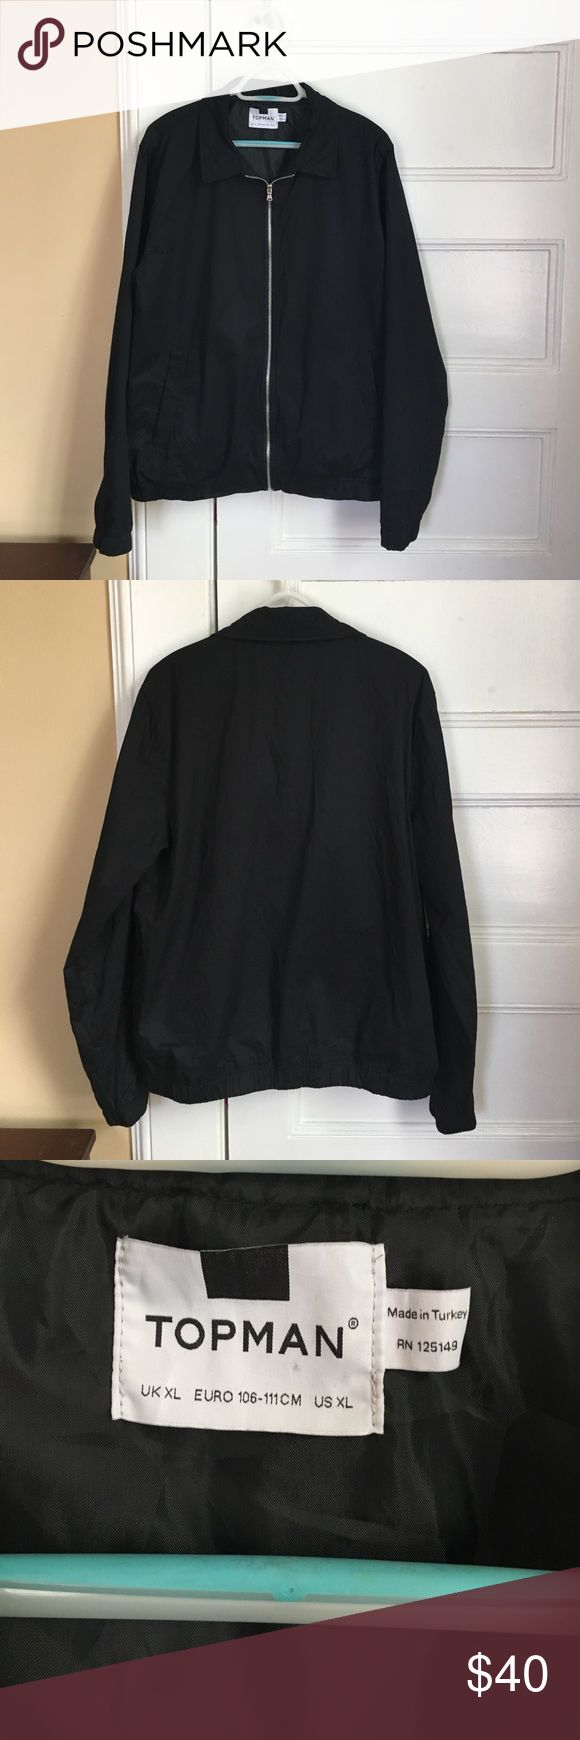 "Topman black Harrington jacket XL EUC Topman black Harrington jacket, zip close, welt pockets, fully lined, elasticized cuffs and hem. 27"" long. Size XL, no stains or other flaws. Excellent condition. Topman Jackets & Coats Lightweight & Shirt Jackets"